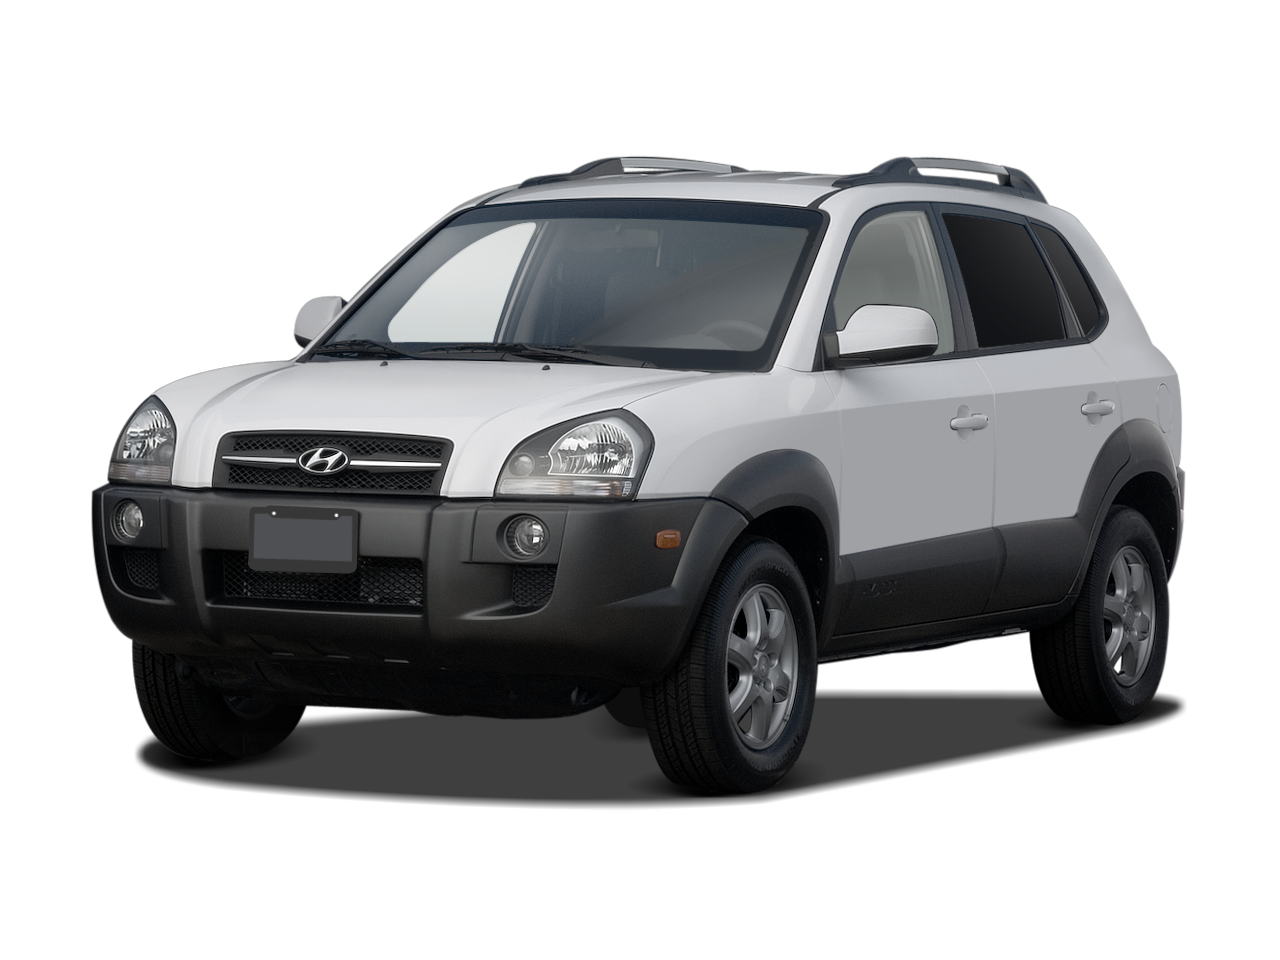 2009 hyundai tucson fcev fuel cell vehicle green news latest features and reviews. Black Bedroom Furniture Sets. Home Design Ideas